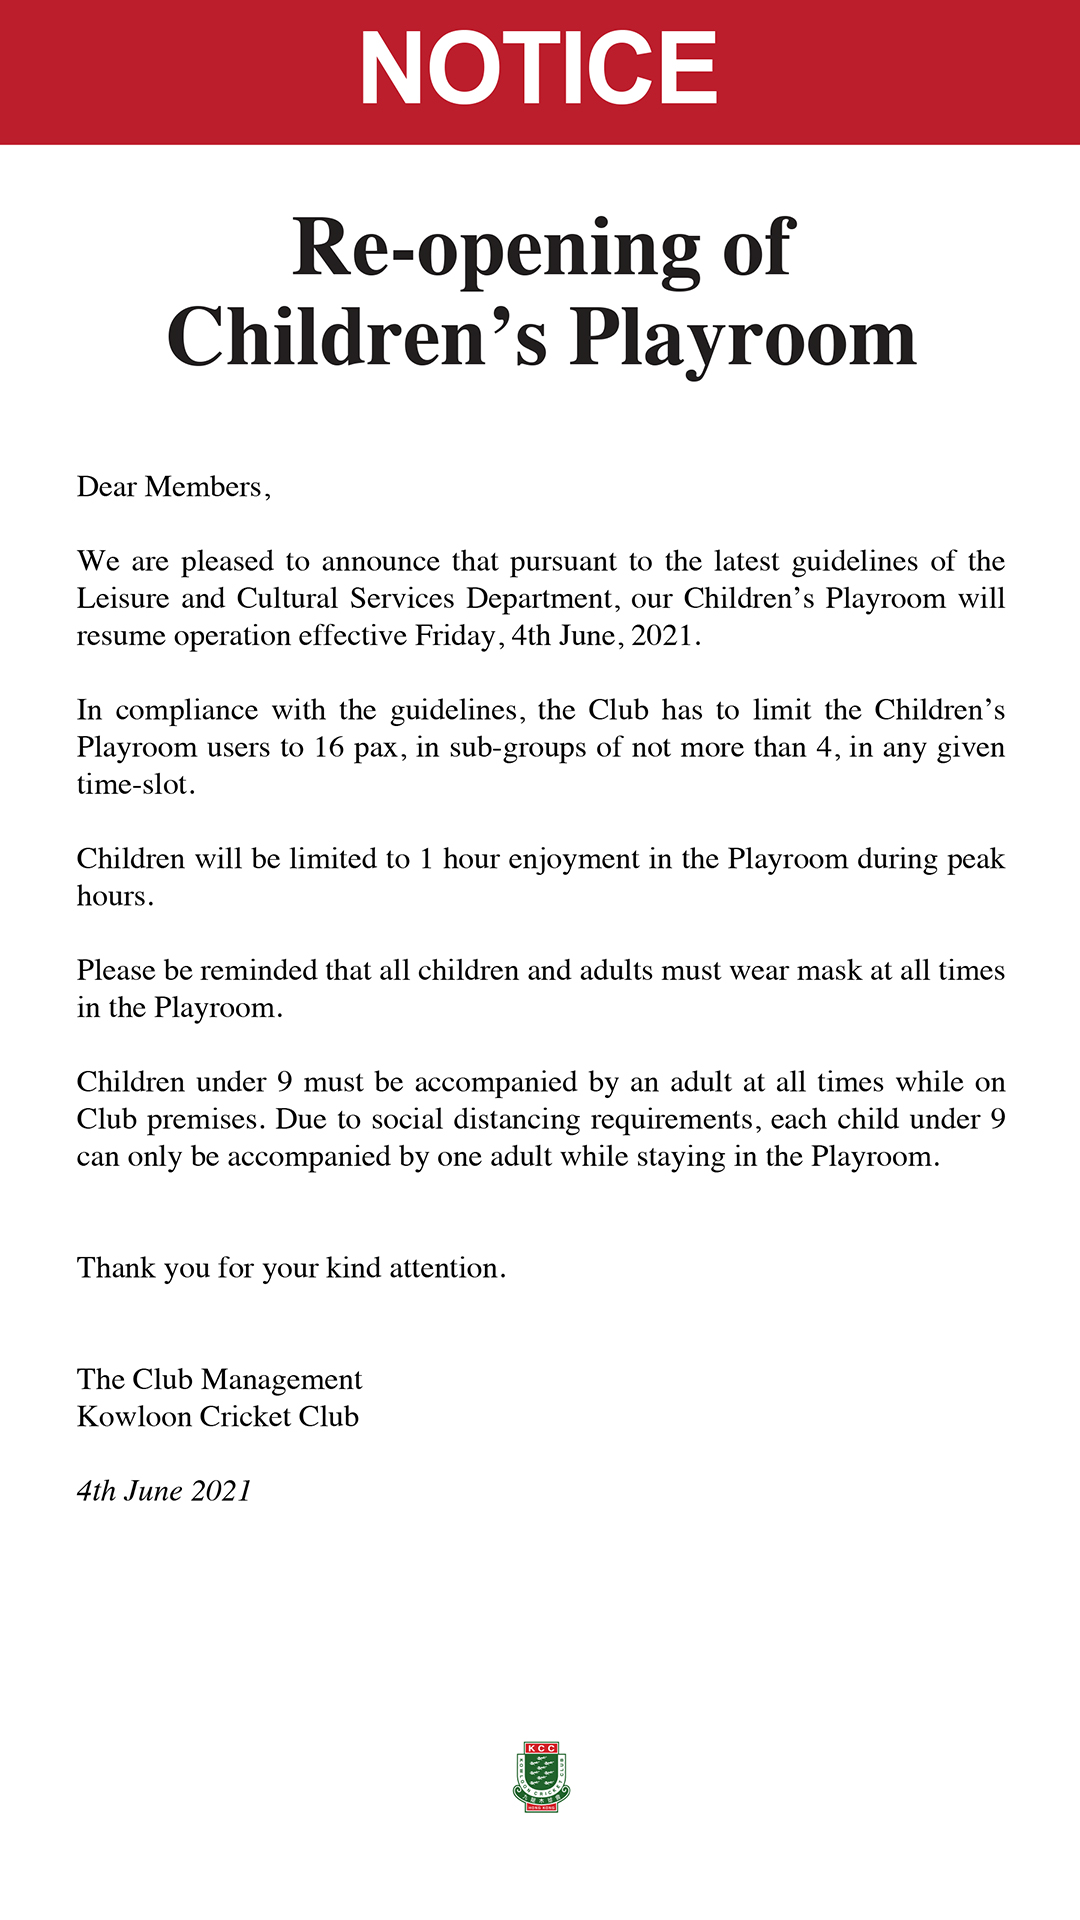 202106-Reopening of Children Playroom-ENB-r1